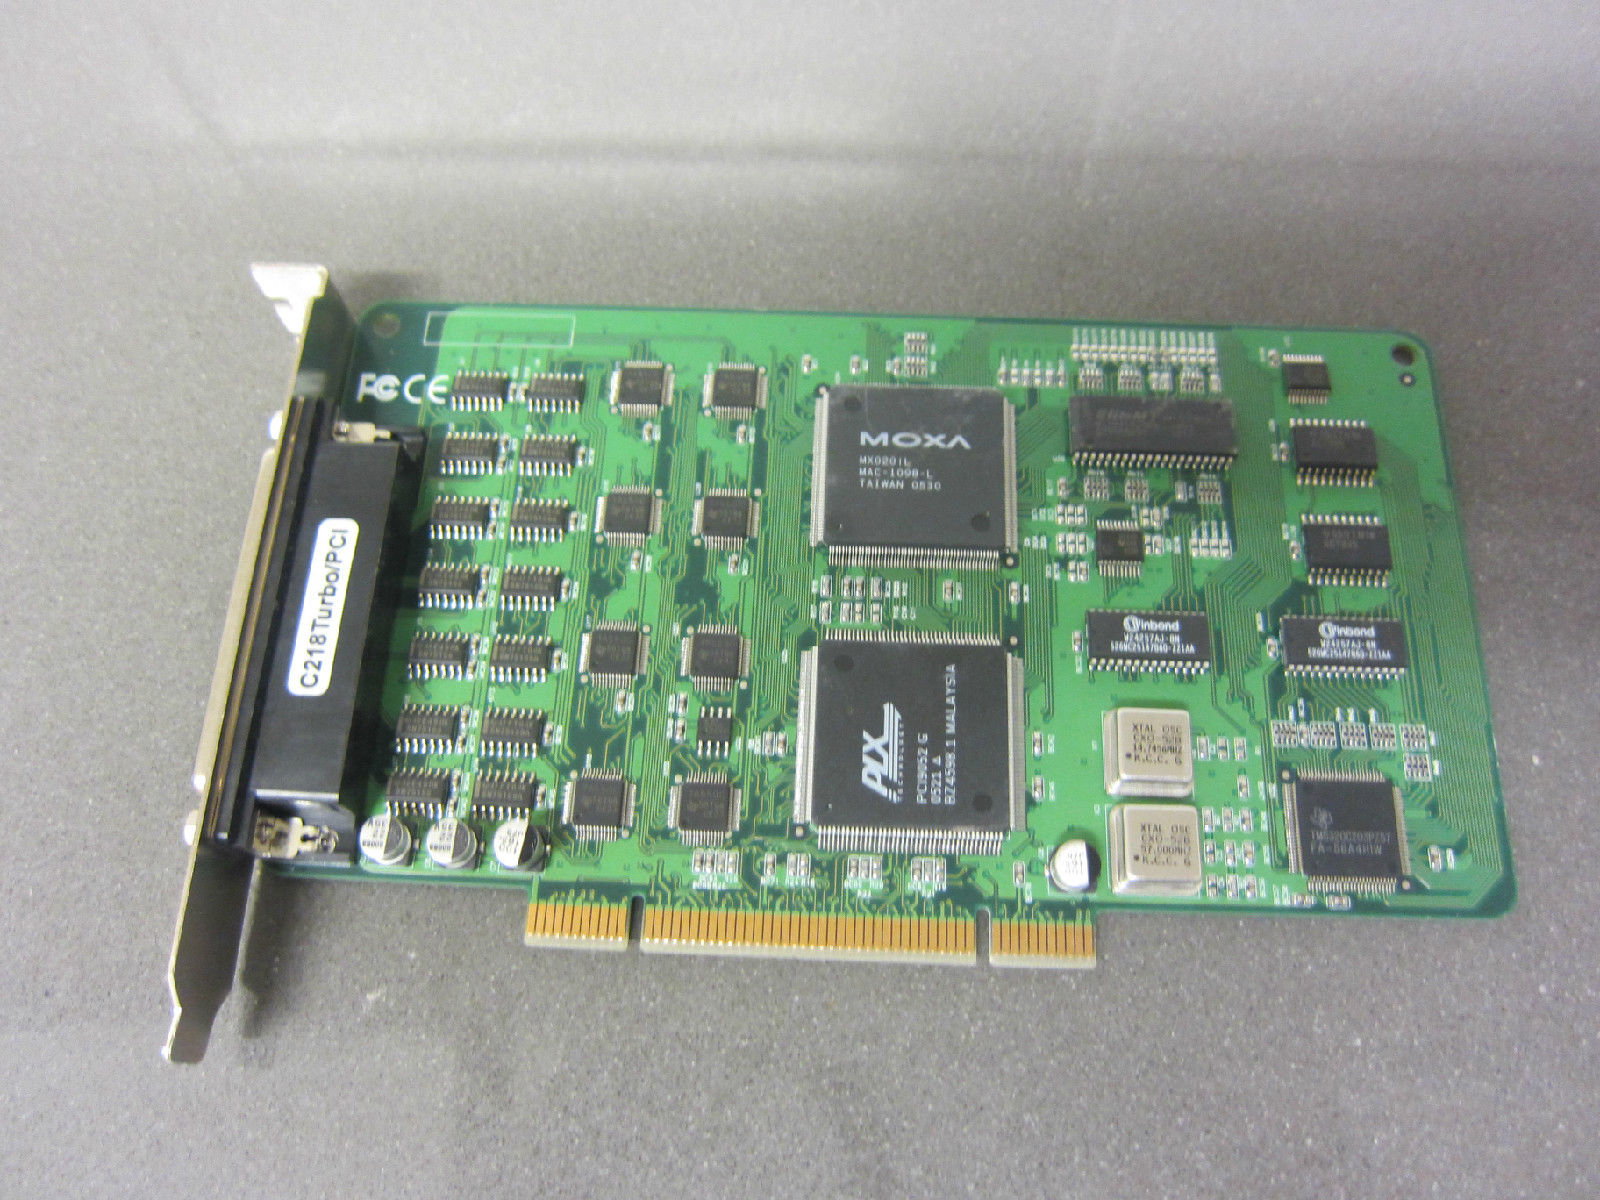 Moxa C218Turbo C218Turbo/PCI Card PCBPCI218T Turbo PCI 8 Port